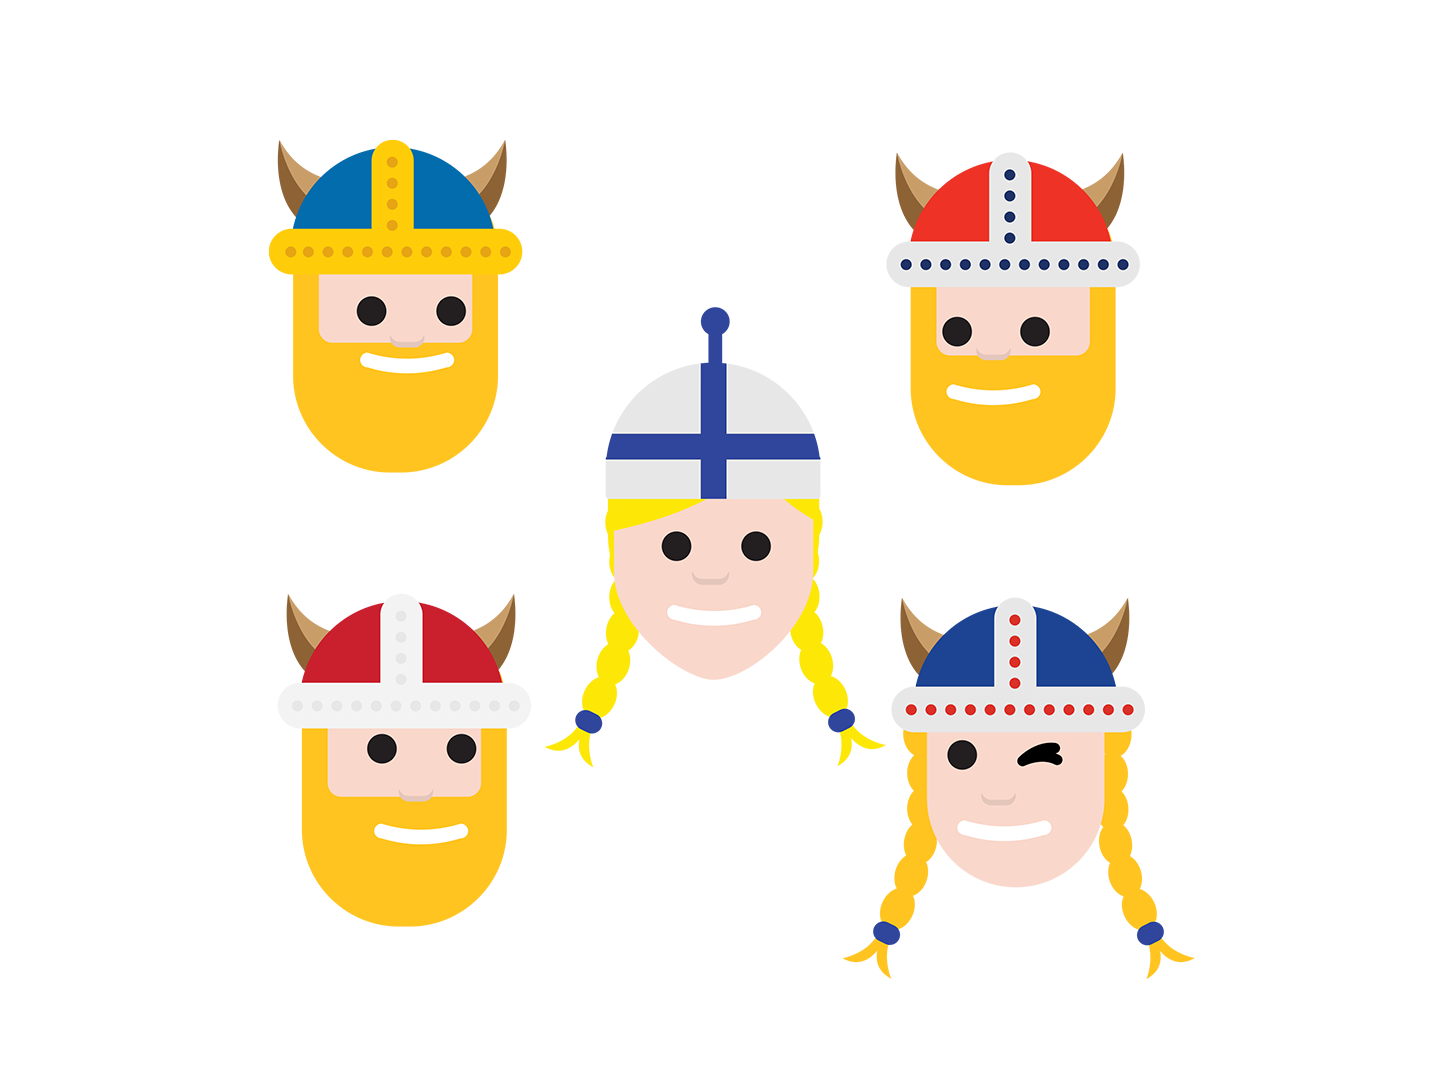 Finland emojis archives toolbox. Friendly clipart emoticon